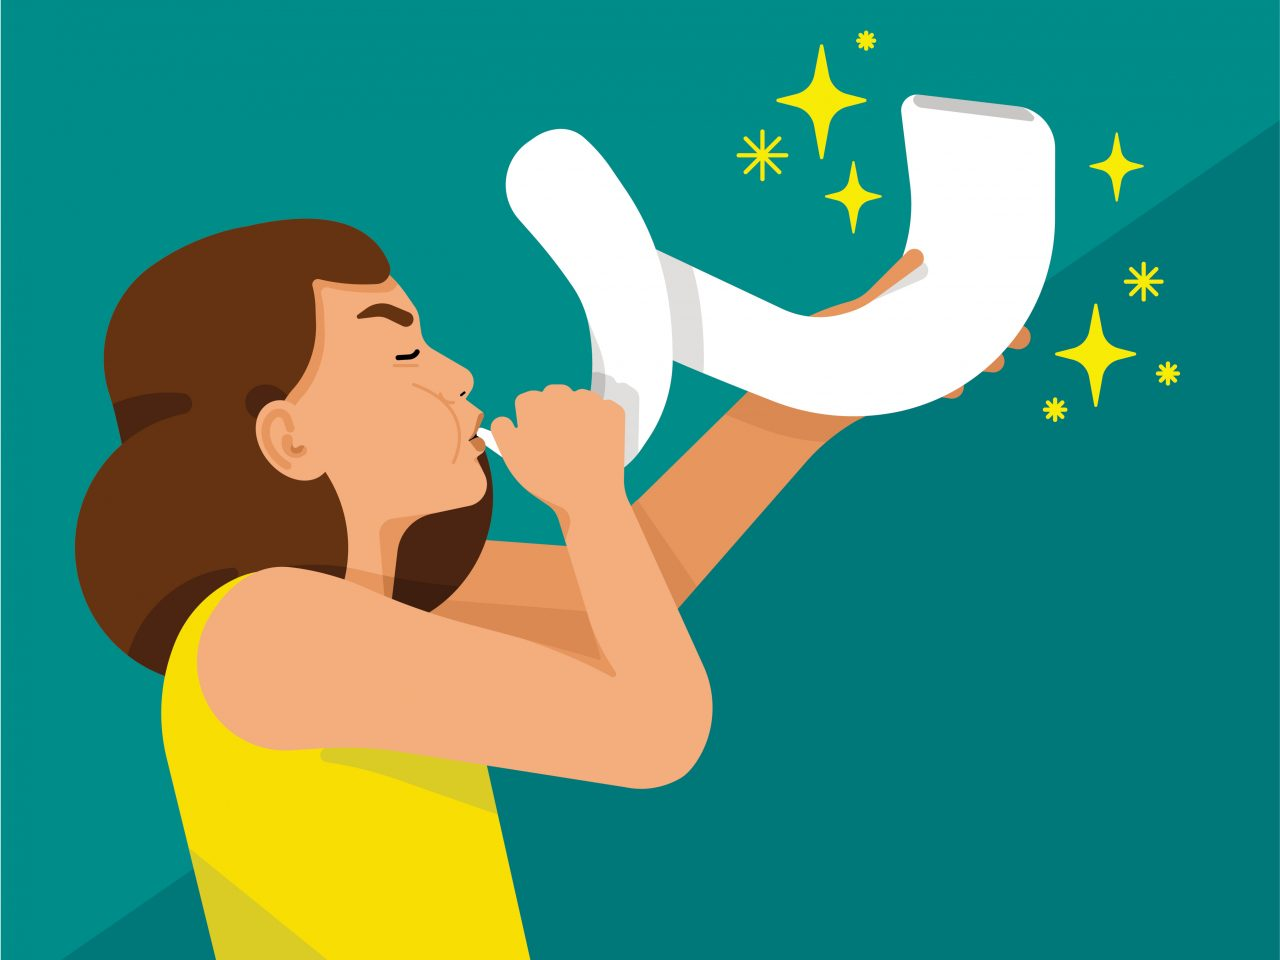 woman with brown hair blowing on a horn represents aries astrological sign